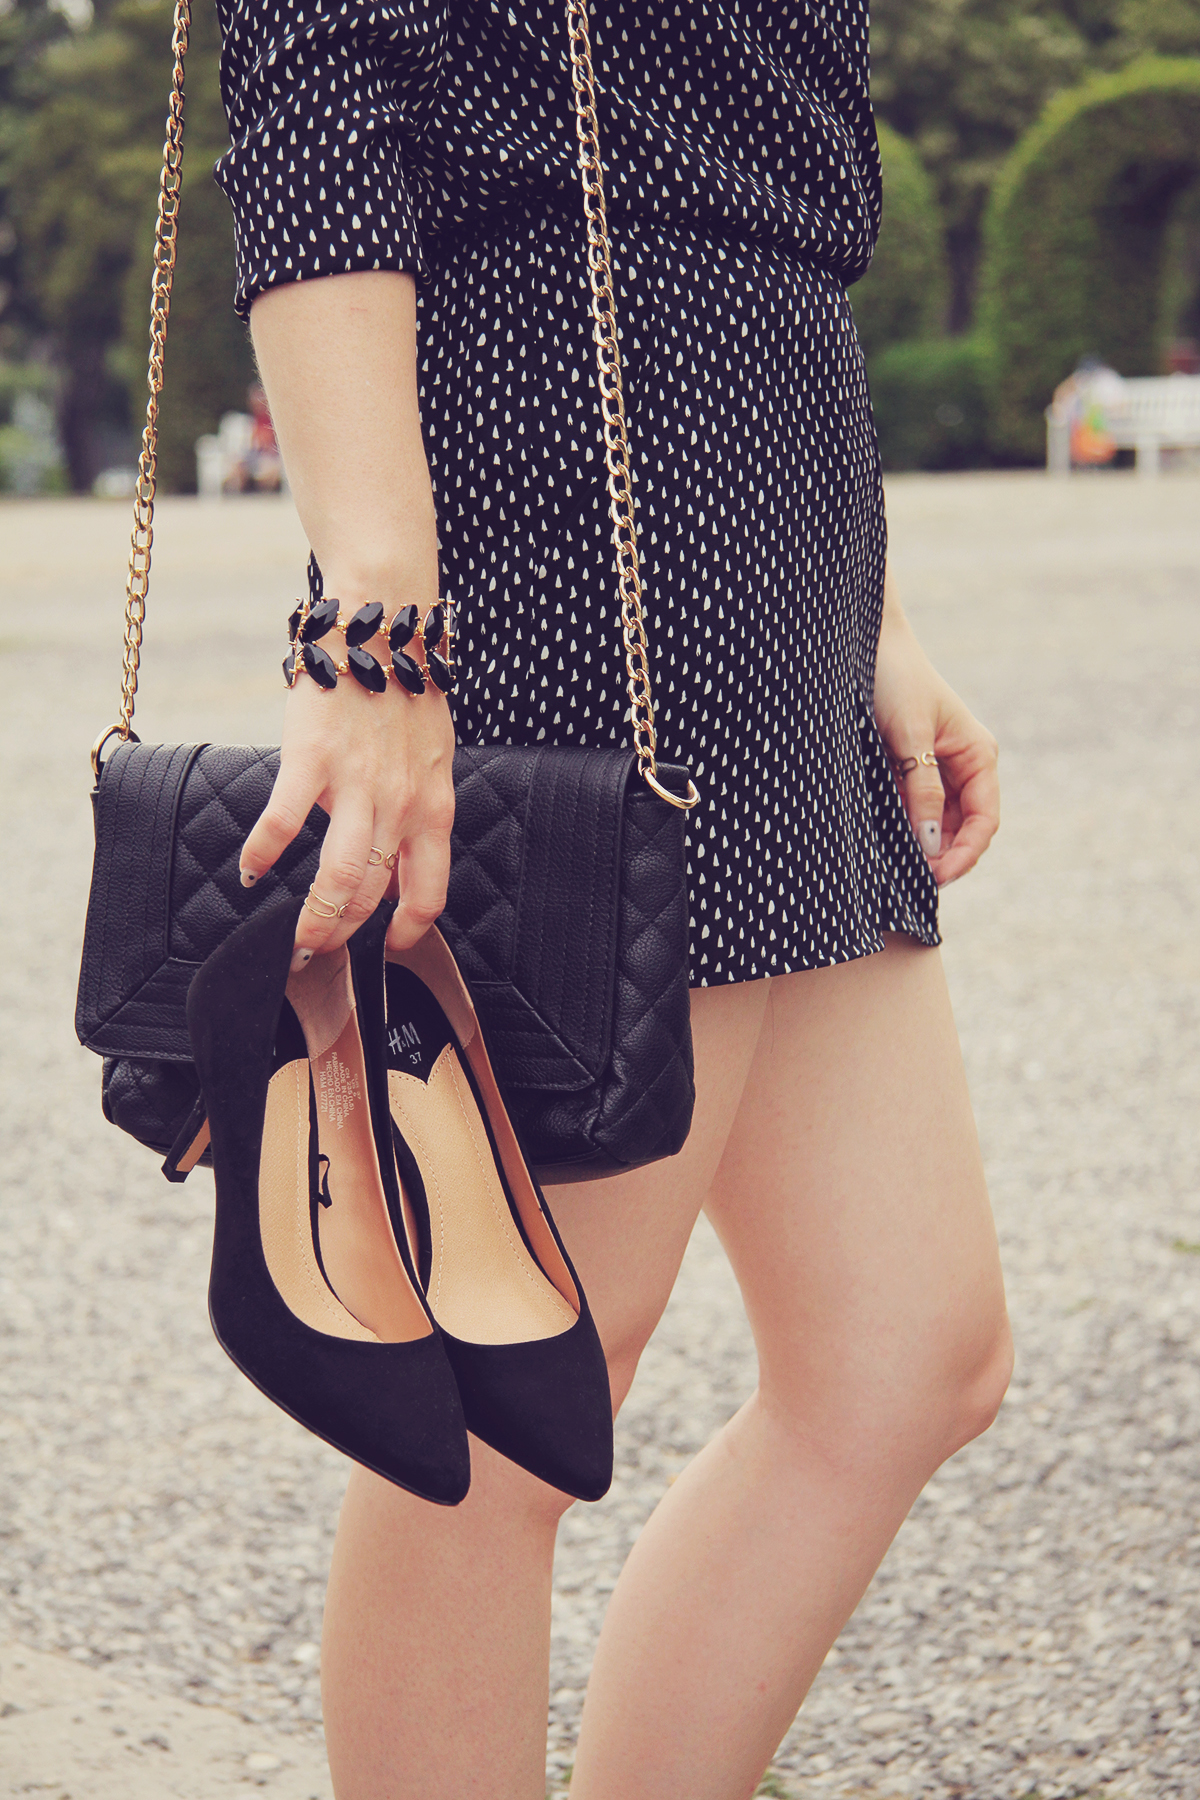 black pumps and accessories